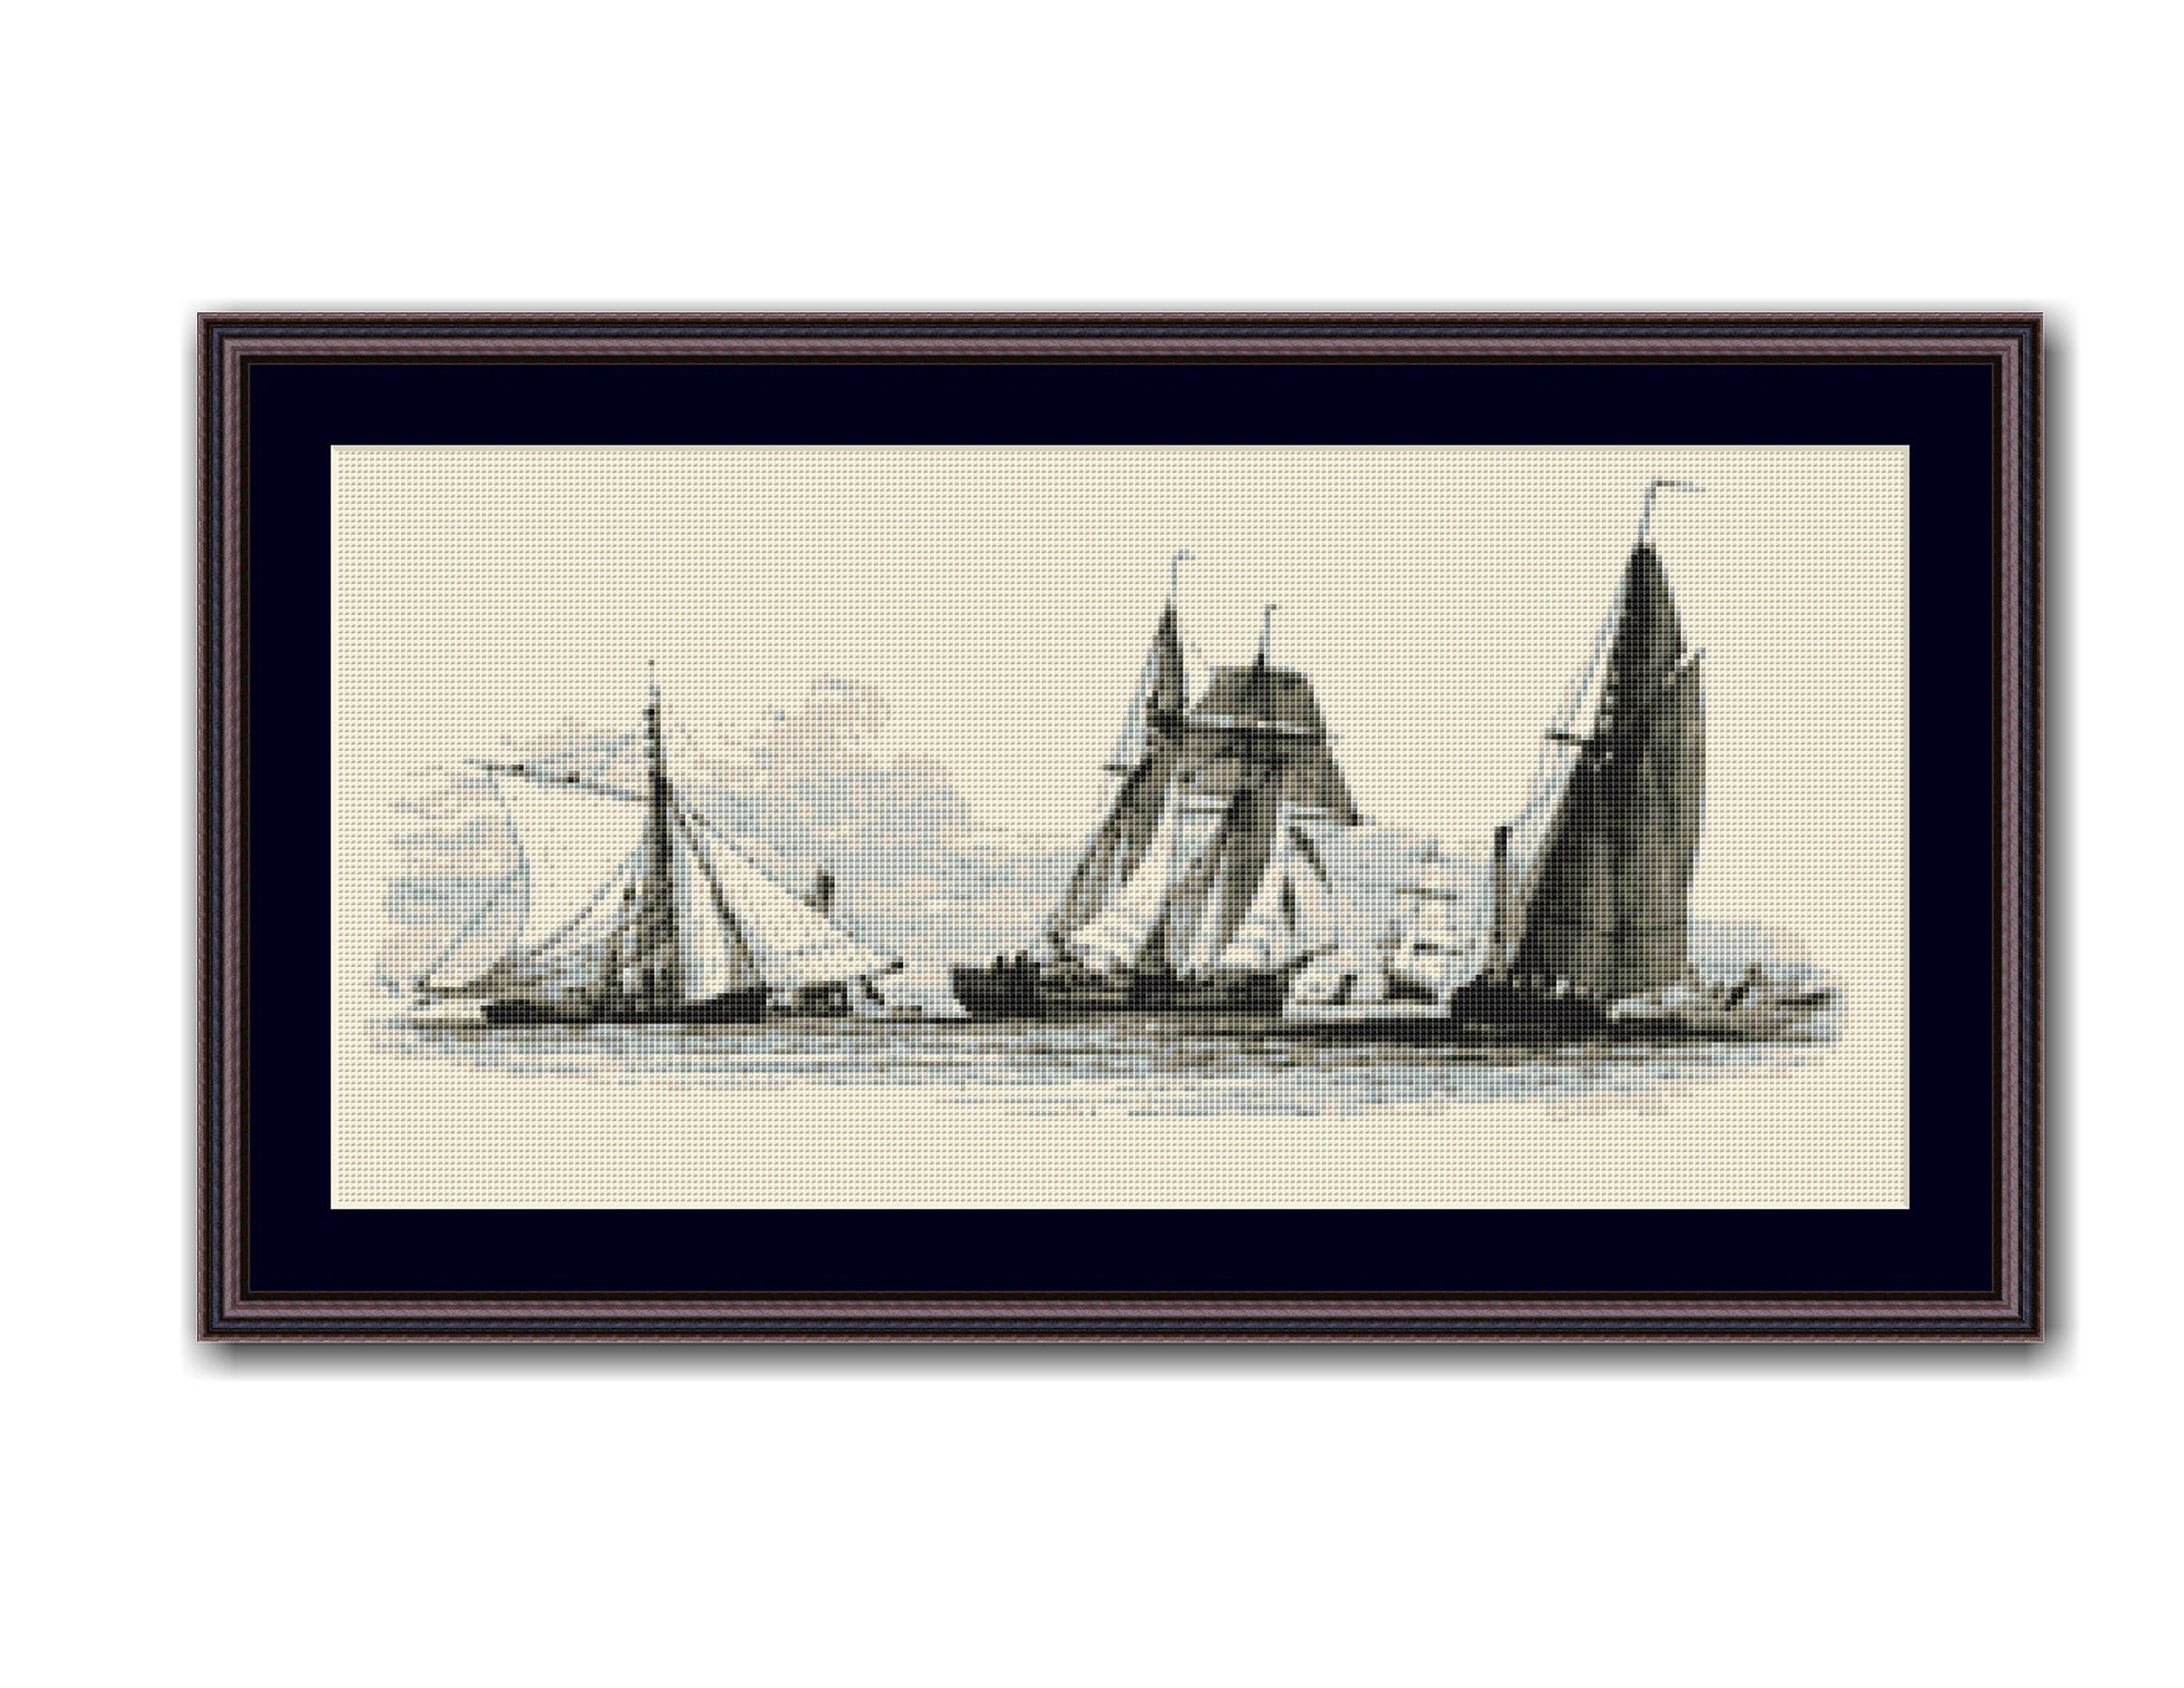 Nautical Embroidery Patterns Smack Schooner Barge Counted Cross Stitch Pattern Chart Nautical Instant Digital Download Ap409